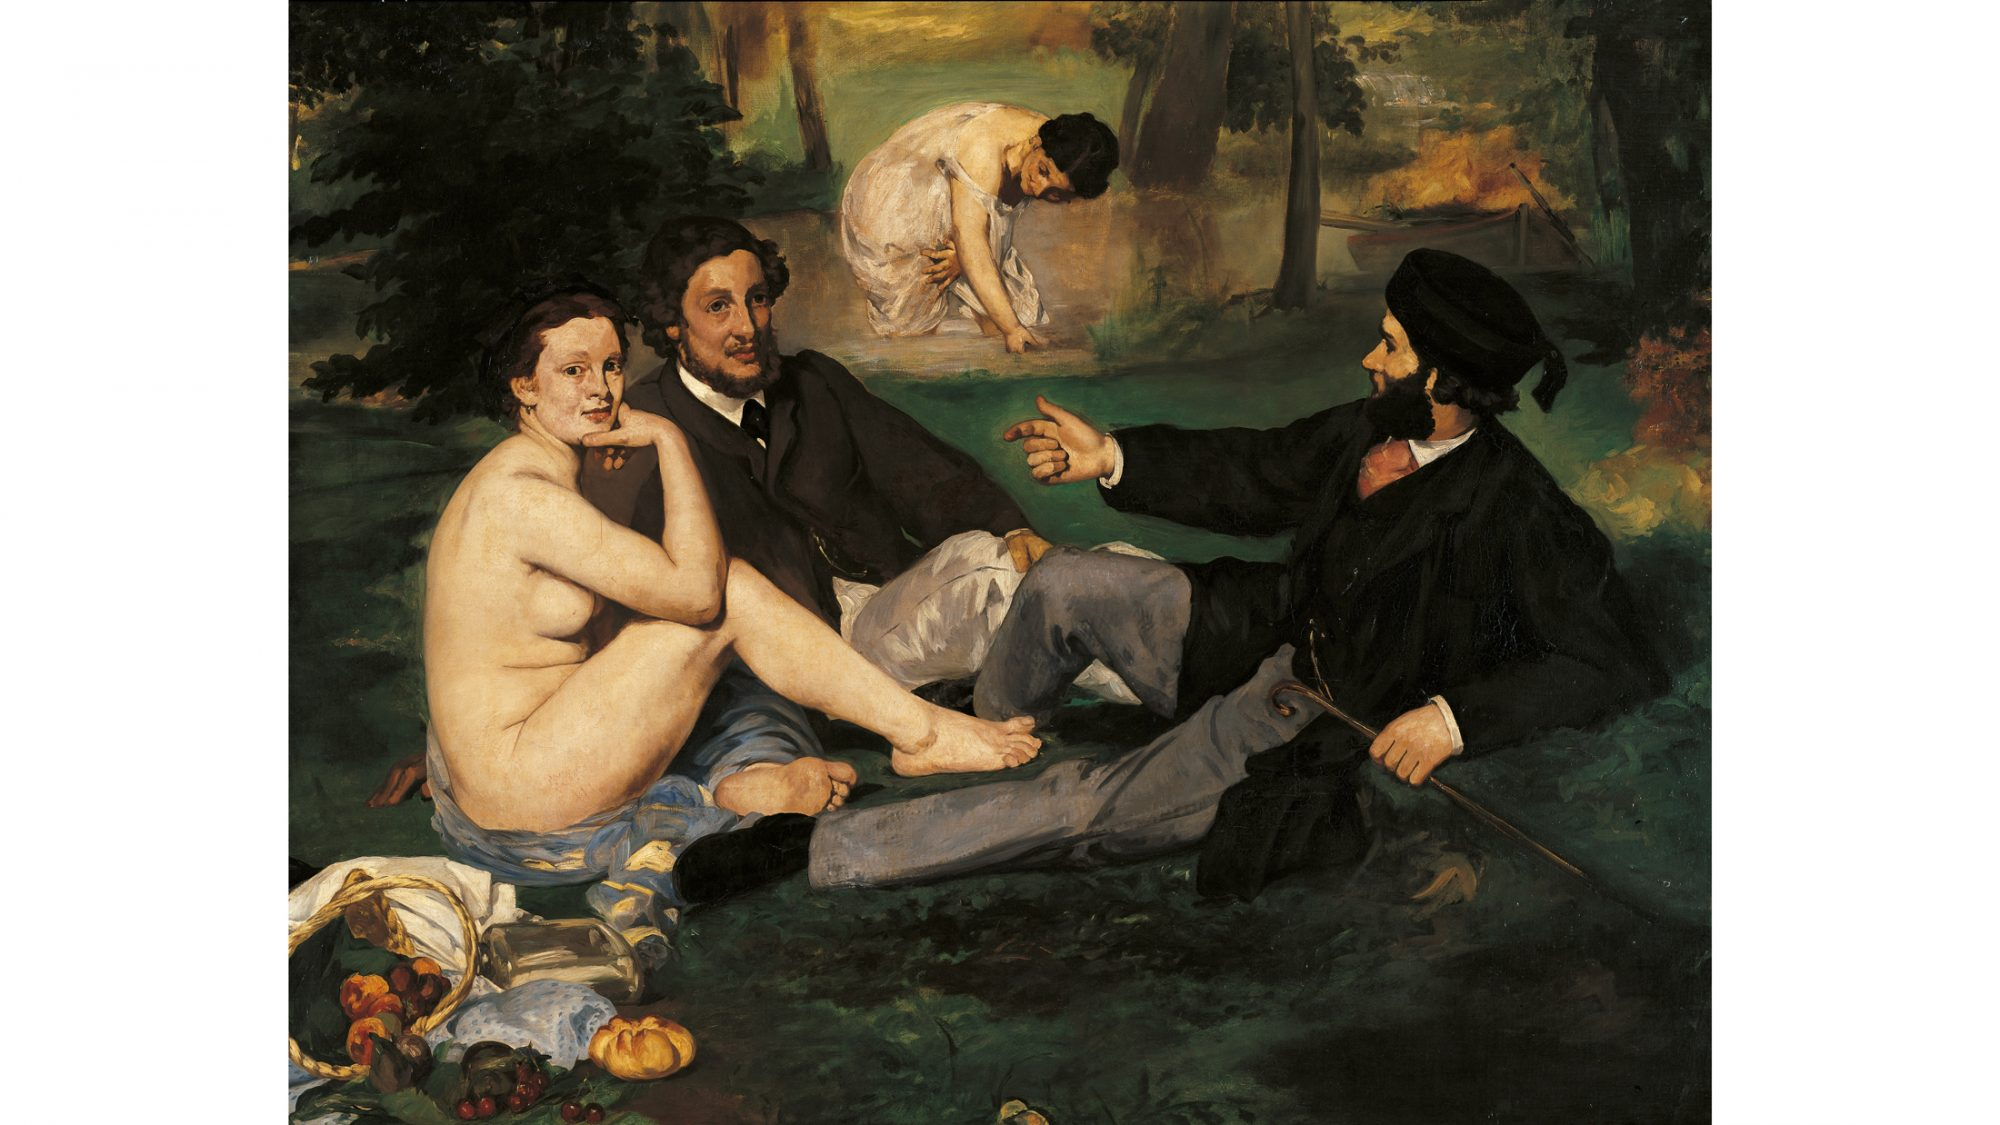 A Brief History of Dining in the Nude